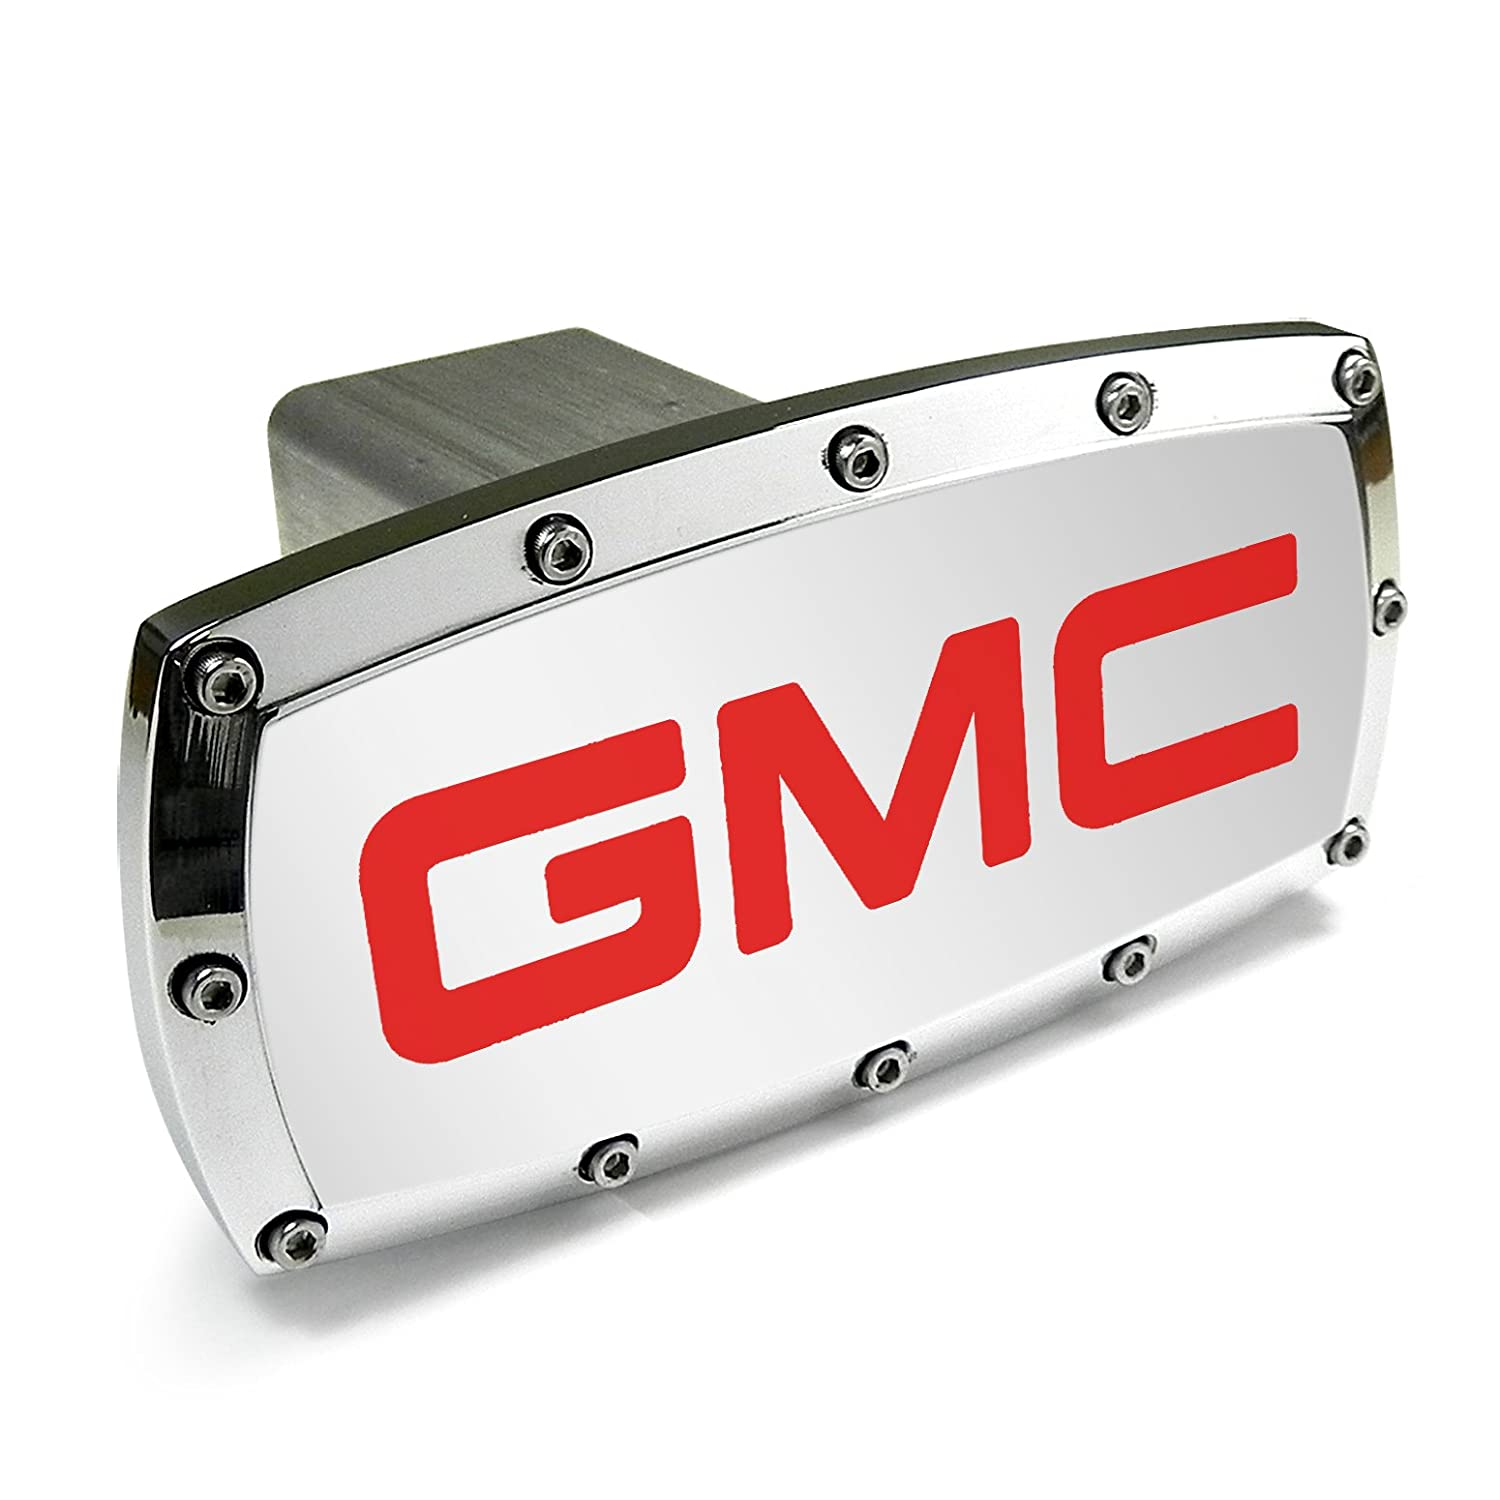 GMC Red Engraved Billet Aluminum Tow Hitch Cover